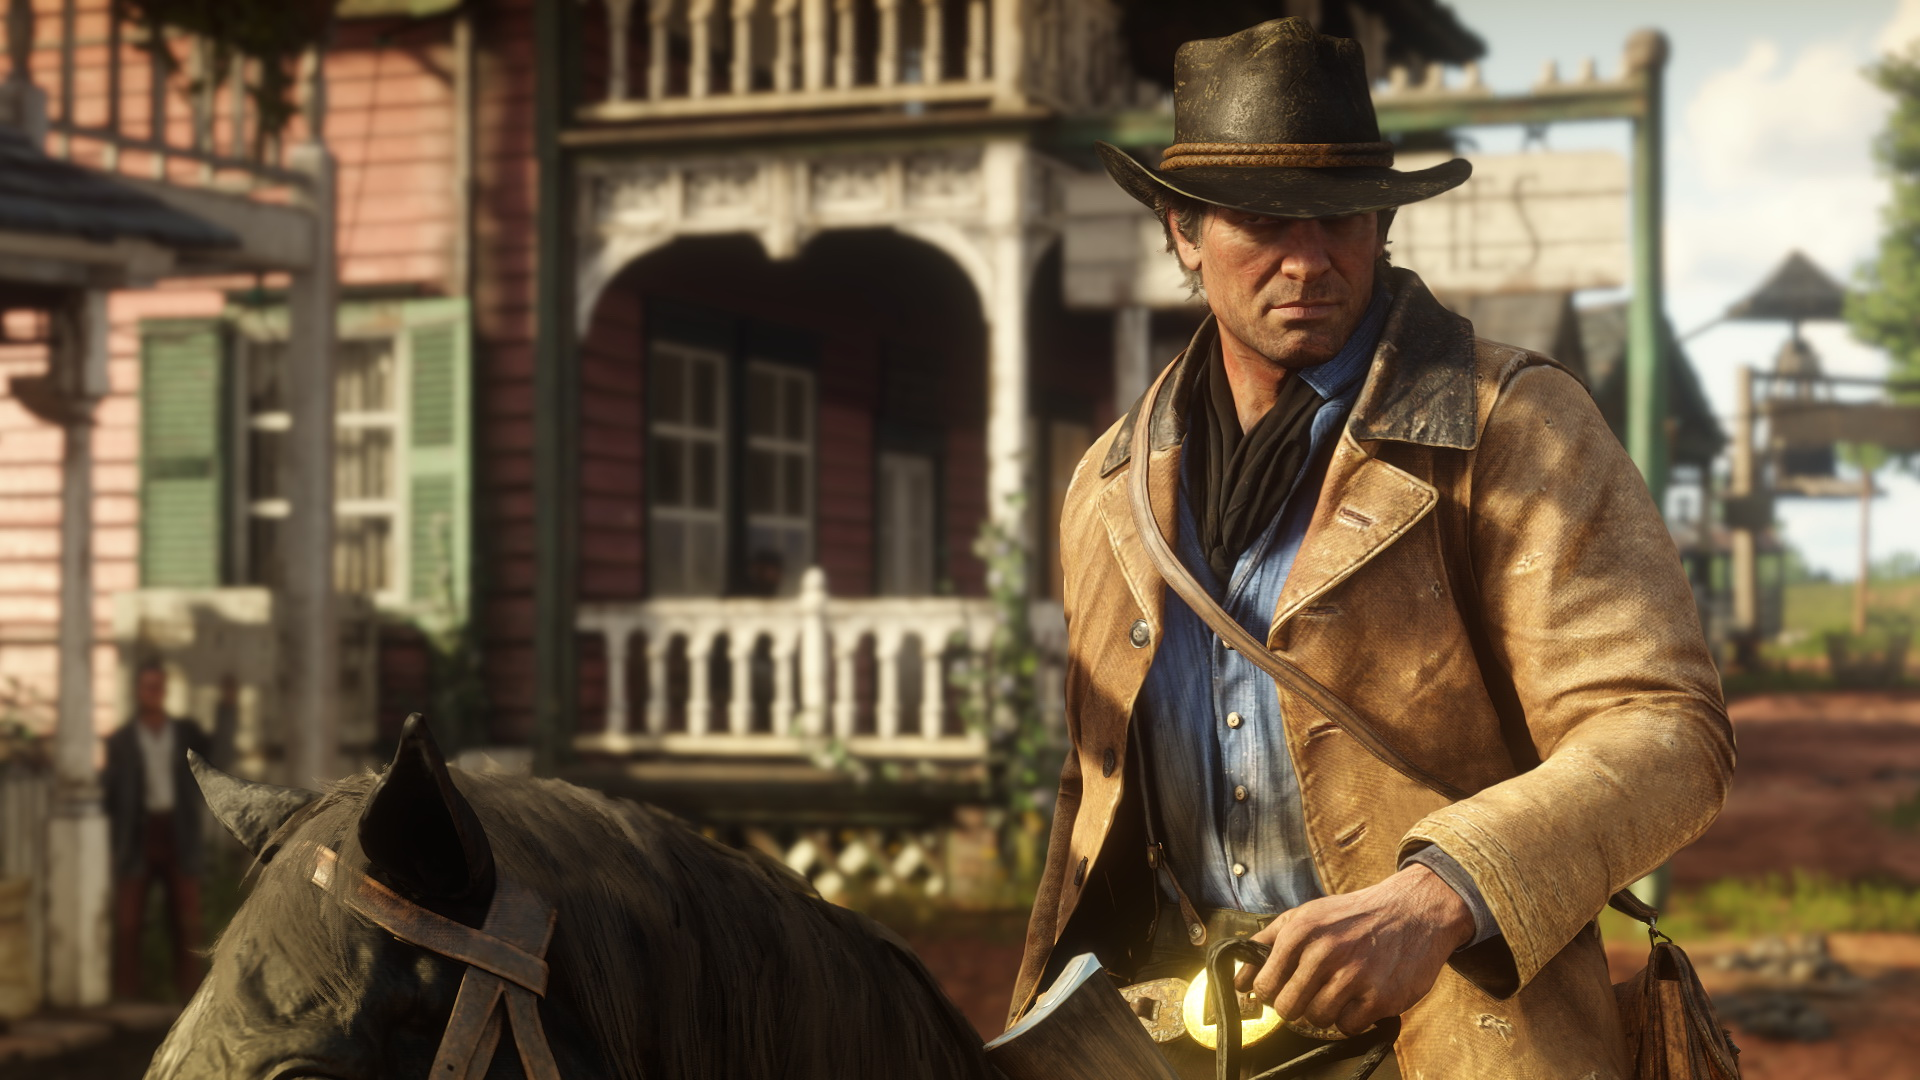 Red Dead Redemption 2 Gets New Screenshots Highlights the Game's World